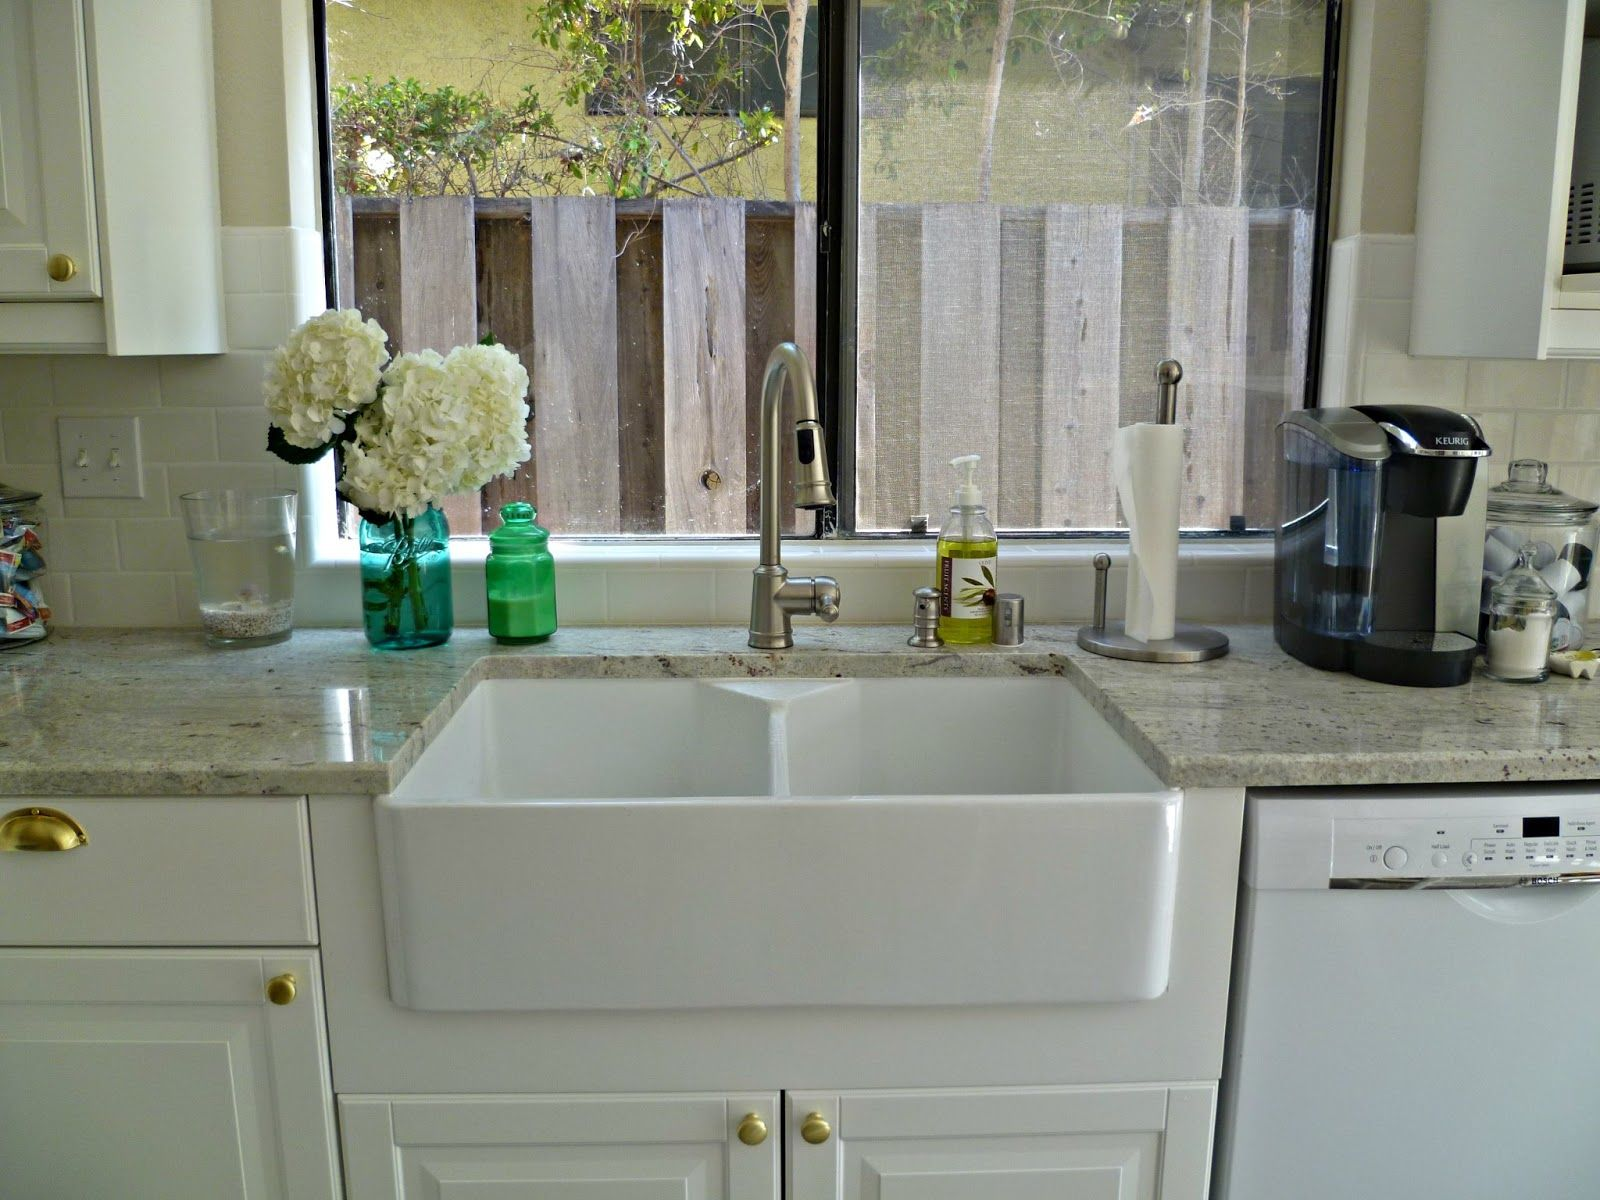 White Granite Kitchen Sink Farmhouse Sinks With Graniter Tops Panels Double Porcelain